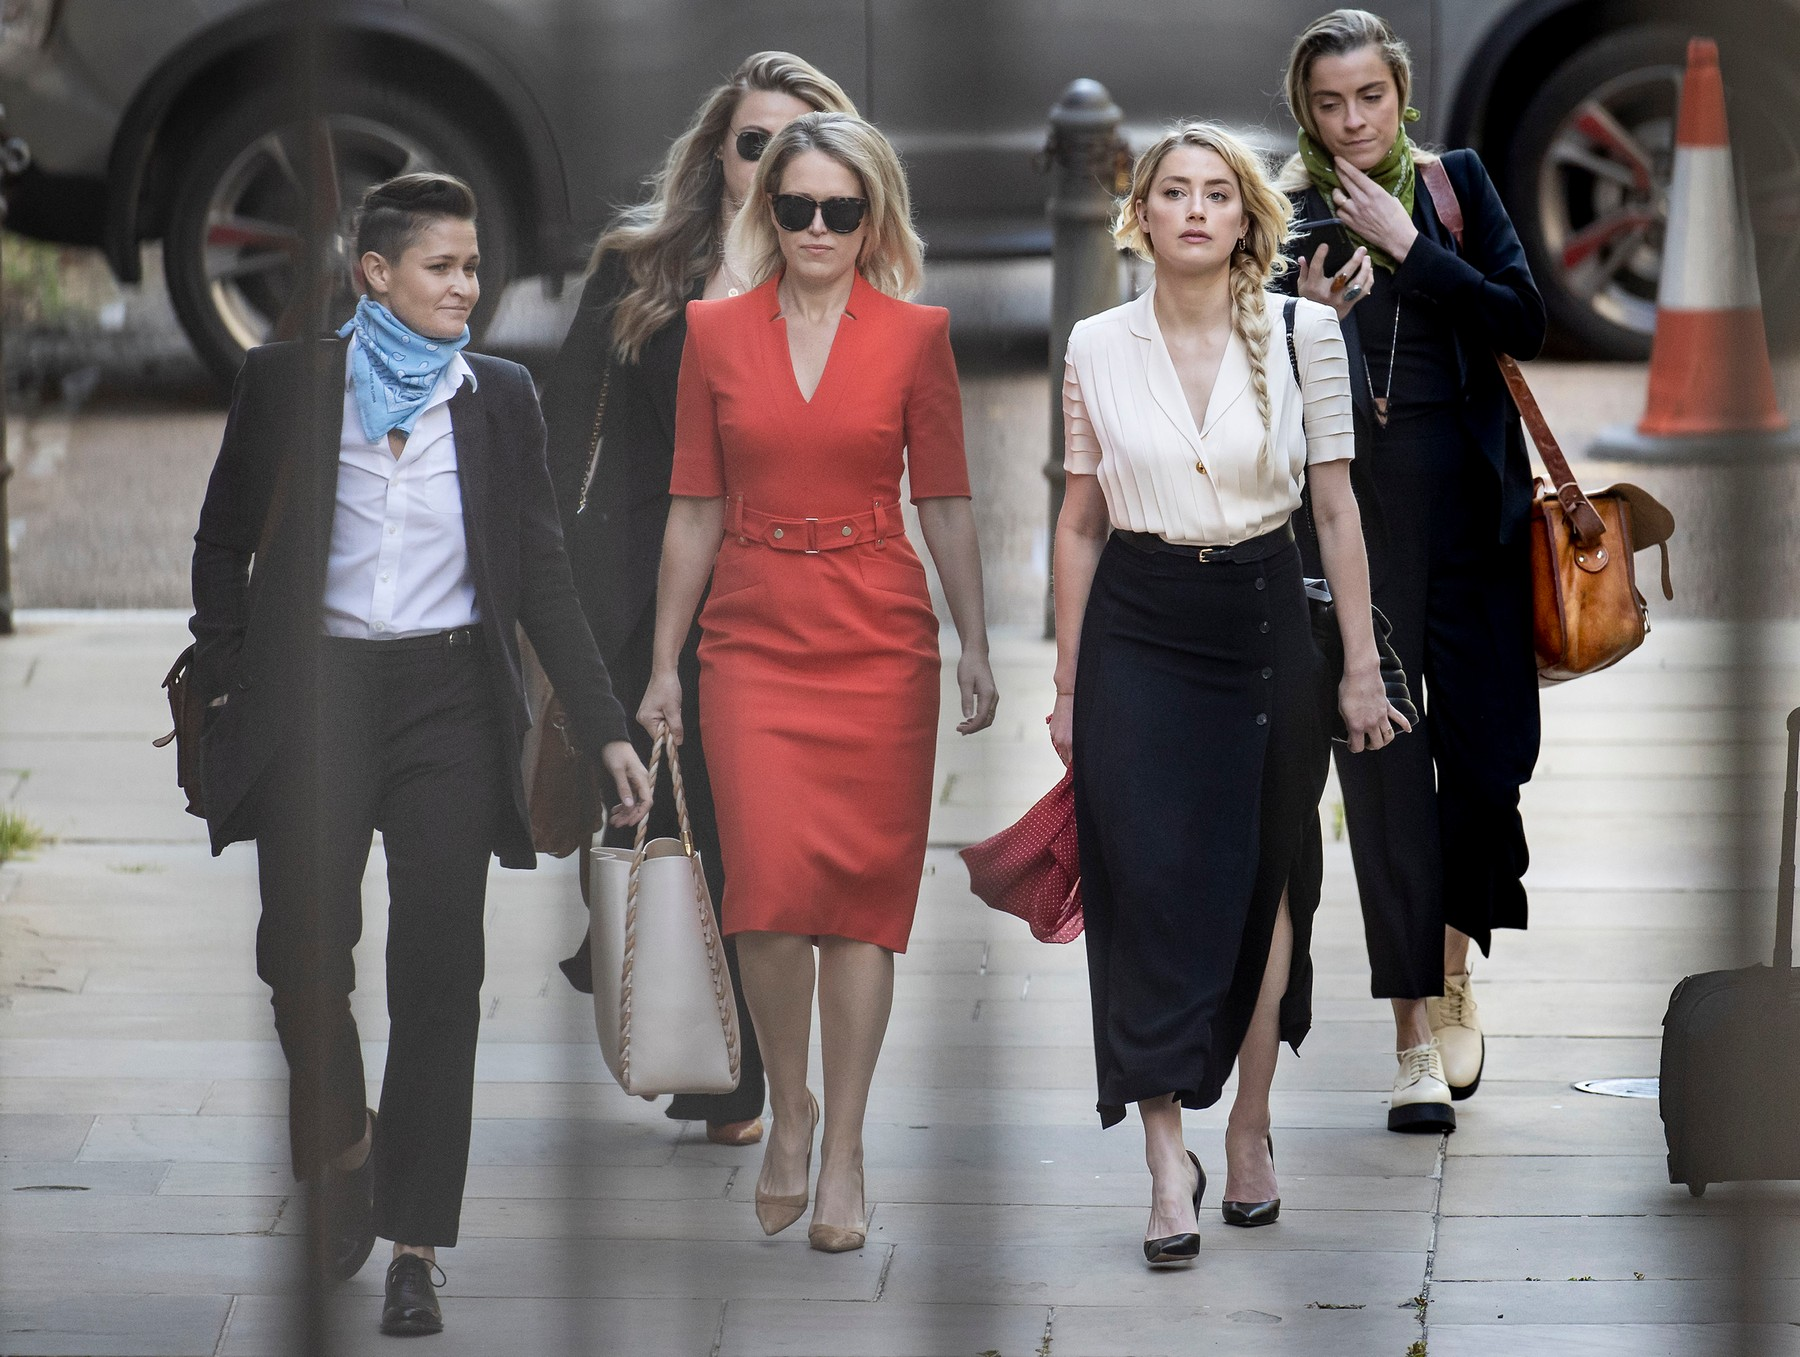 American actor AMBER HEARD (2R) arrives with girlfriend Bianca Butti (L), lawyer Jennifer Robinson (2L) and her sister Whitney Heard (R) at the High Court in London where Johnny Depp is in a legal dispute with UK tabloid newspaper The Sun over allegations he assaulted his former wife, Amber Heard.,Image: 545325083, License: Rights-managed, Restrictions: WORLDWIDE RIGHTS AVAILABLE. End users shall not licence, sell, transmit, or distribute any photographs represented by eyevine, to any third party., Model Release: no, Credit line: Peter Macdiarmid / Eyevine / Profimedia